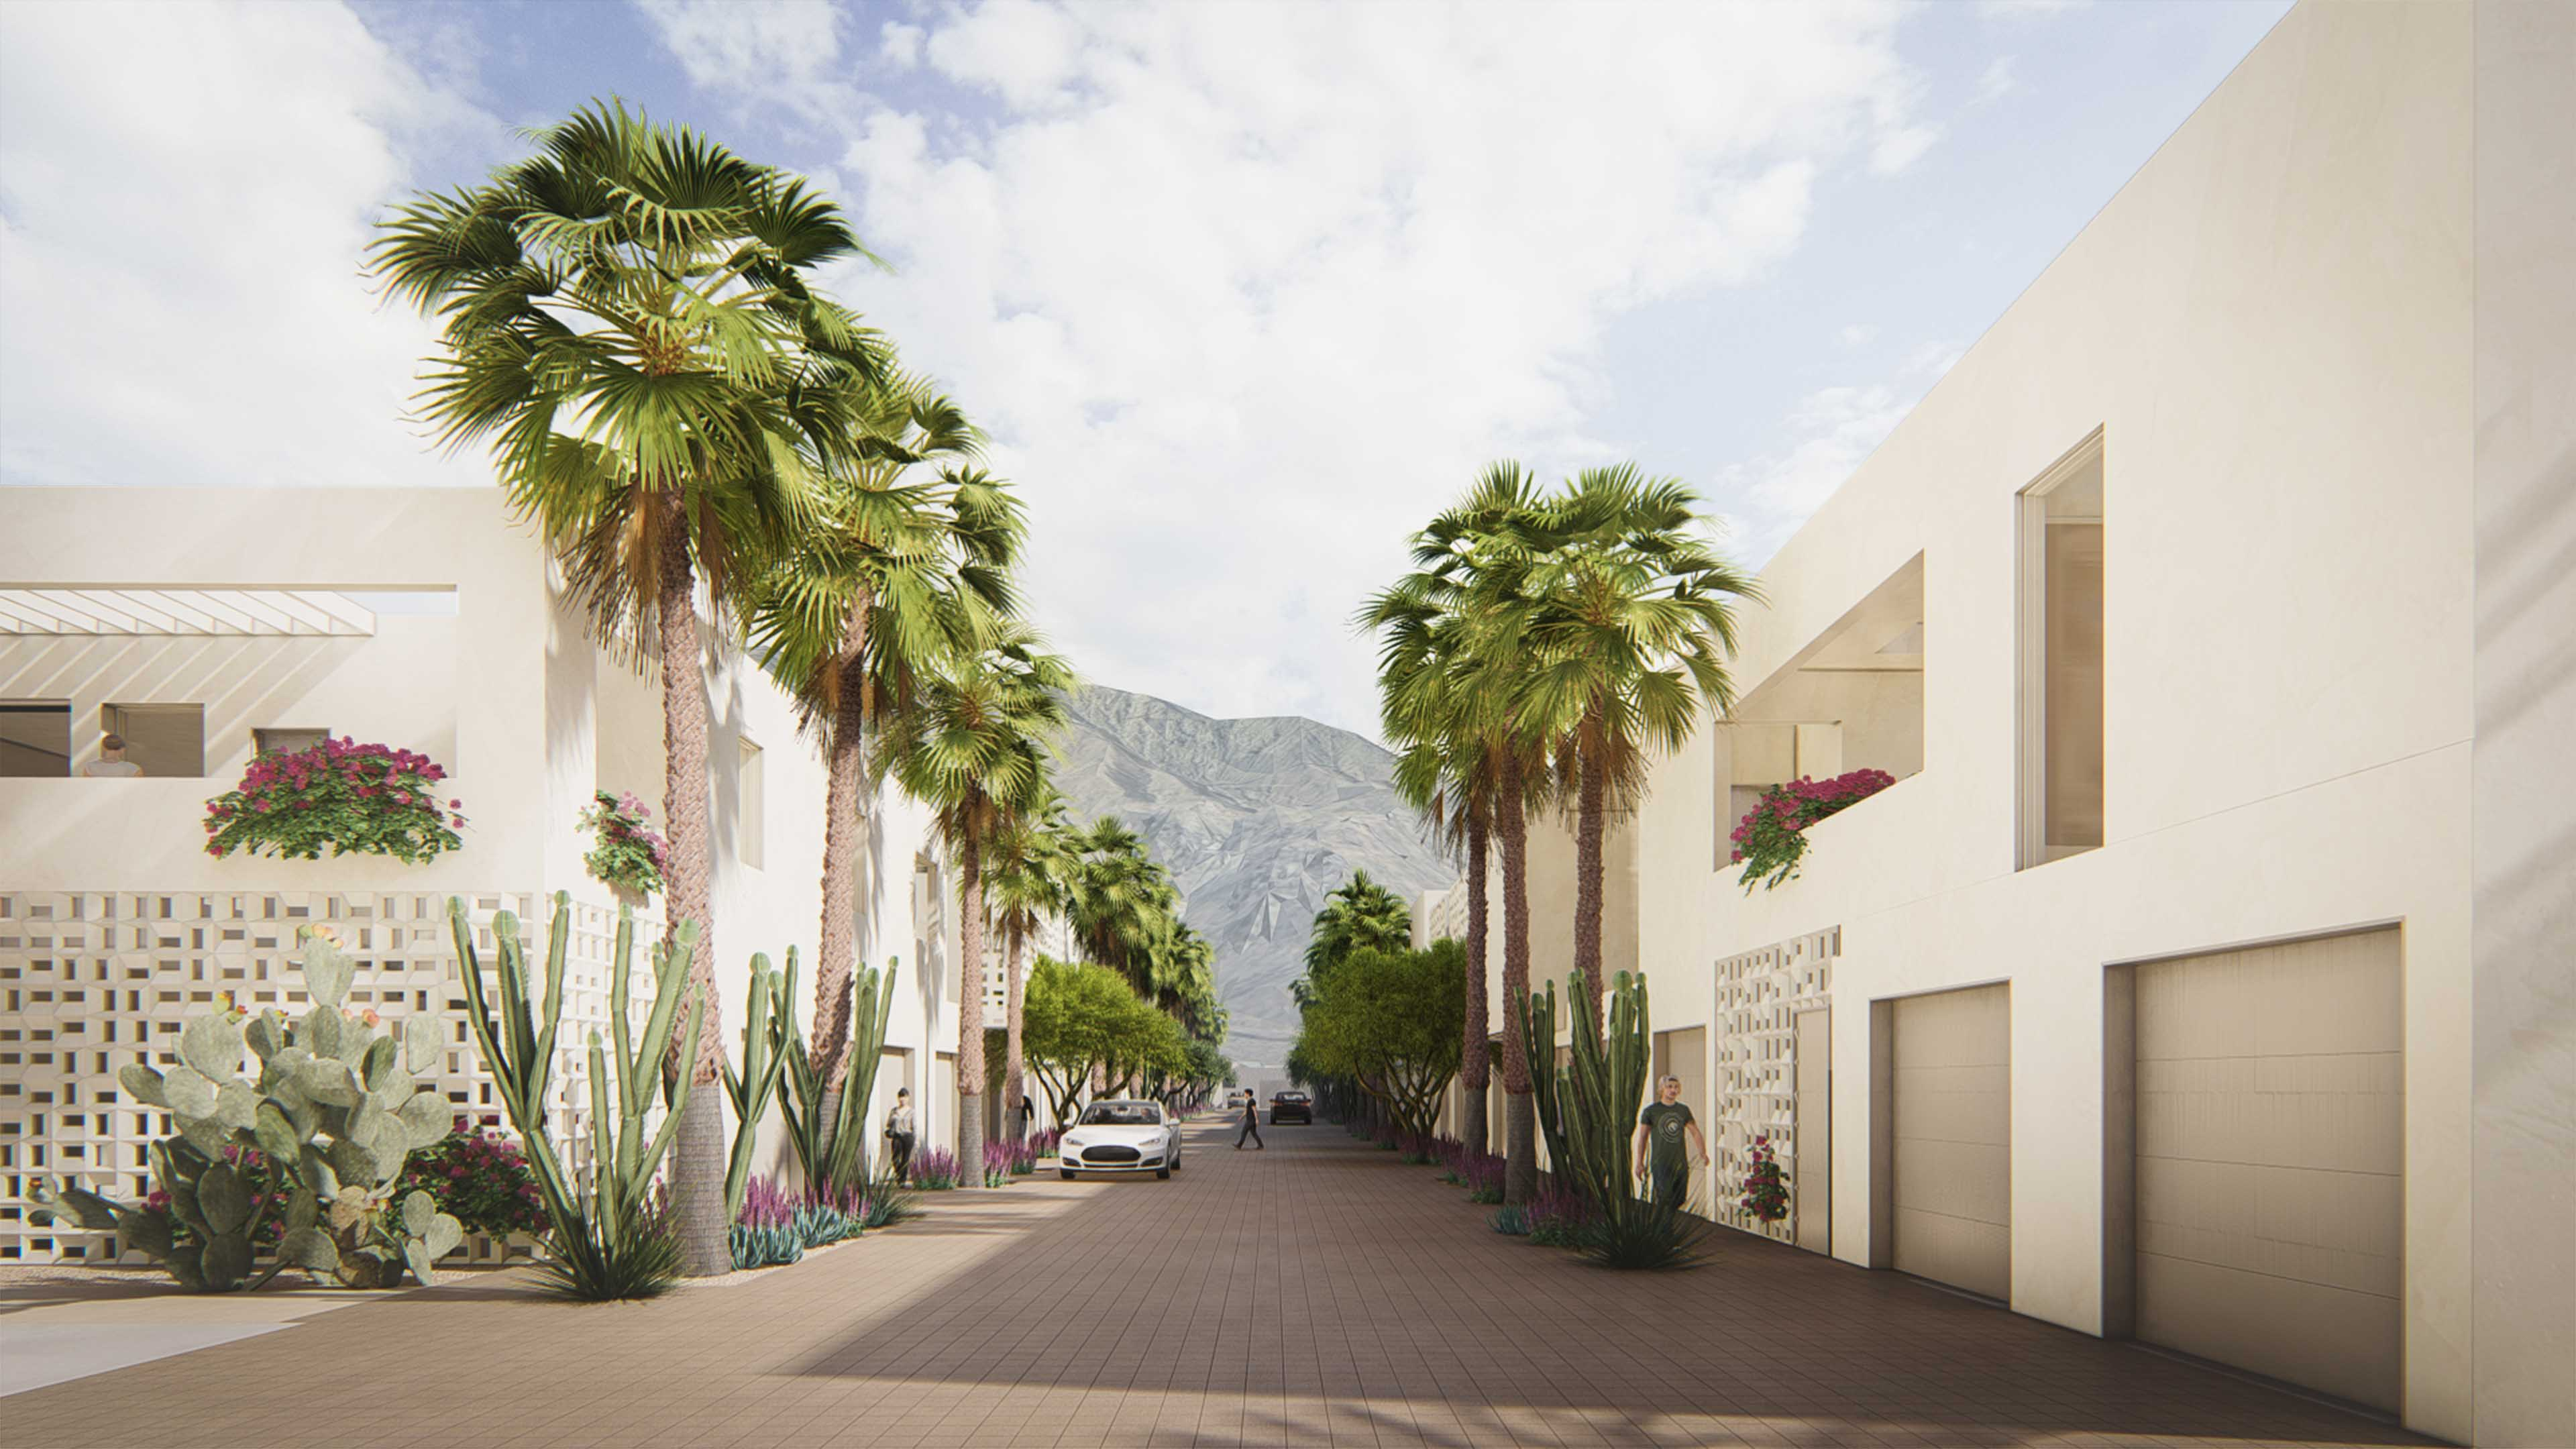 Alleyway lined with palm trees with a view of the mountains peeking in the center